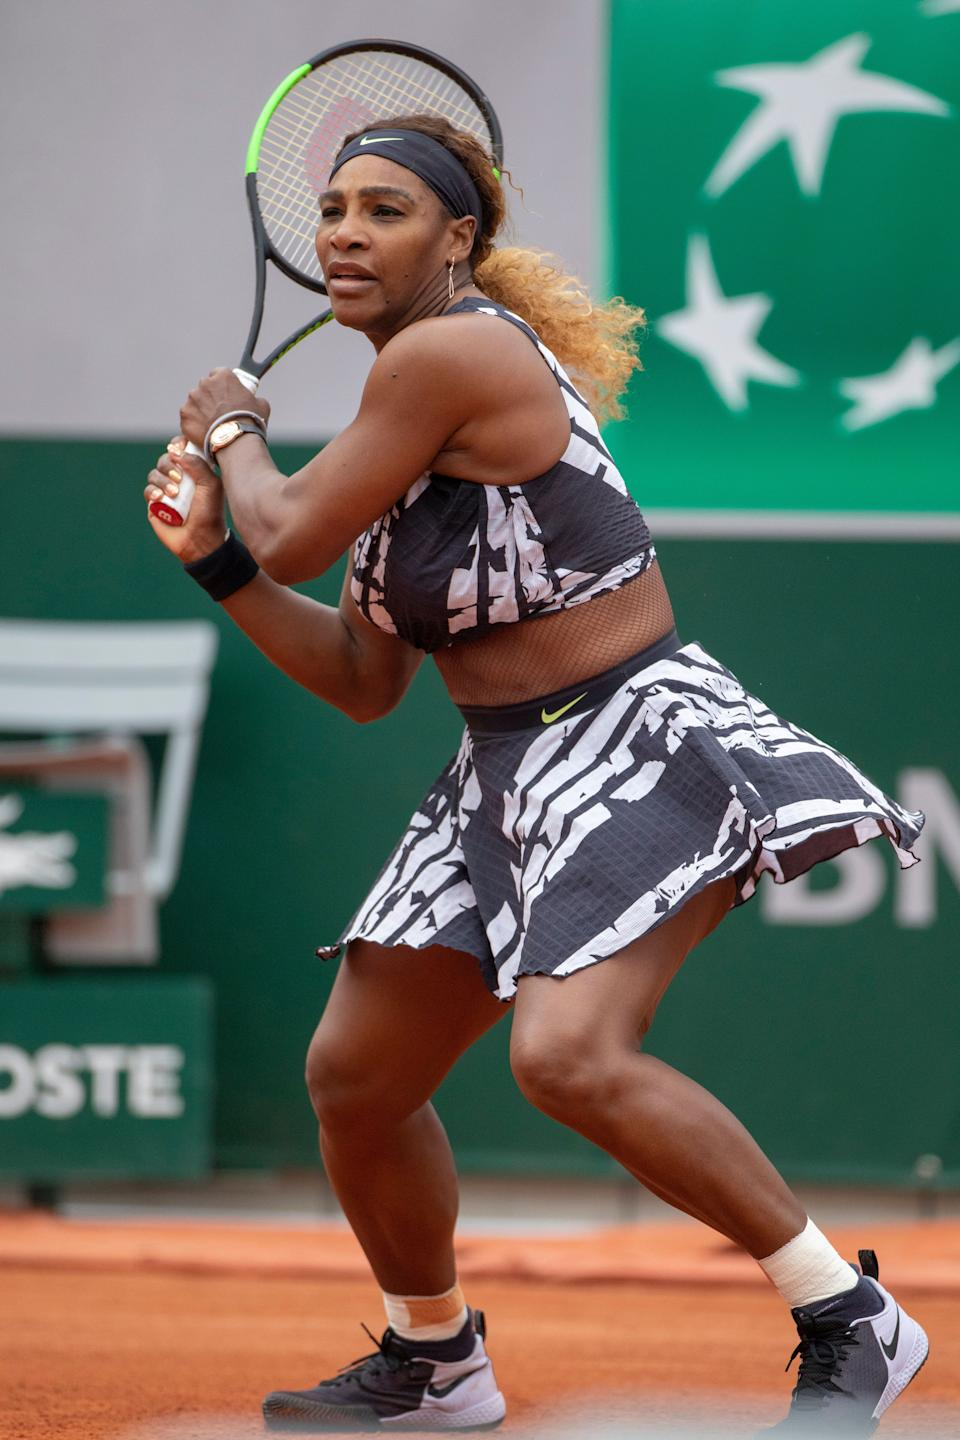 "PARIS, FRANCE May 27.  Serena Williams of the United States in action against Vitalia Diatchenko of Russia on Court Philippe-Chatrier in the Women""u2019s Singles first round match at the 2019 French Open Tennis Tournament at Roland Garros on May 27th 2019 in Paris, France. (Photo by Tim Clayton/Corbis via Getty Images)"